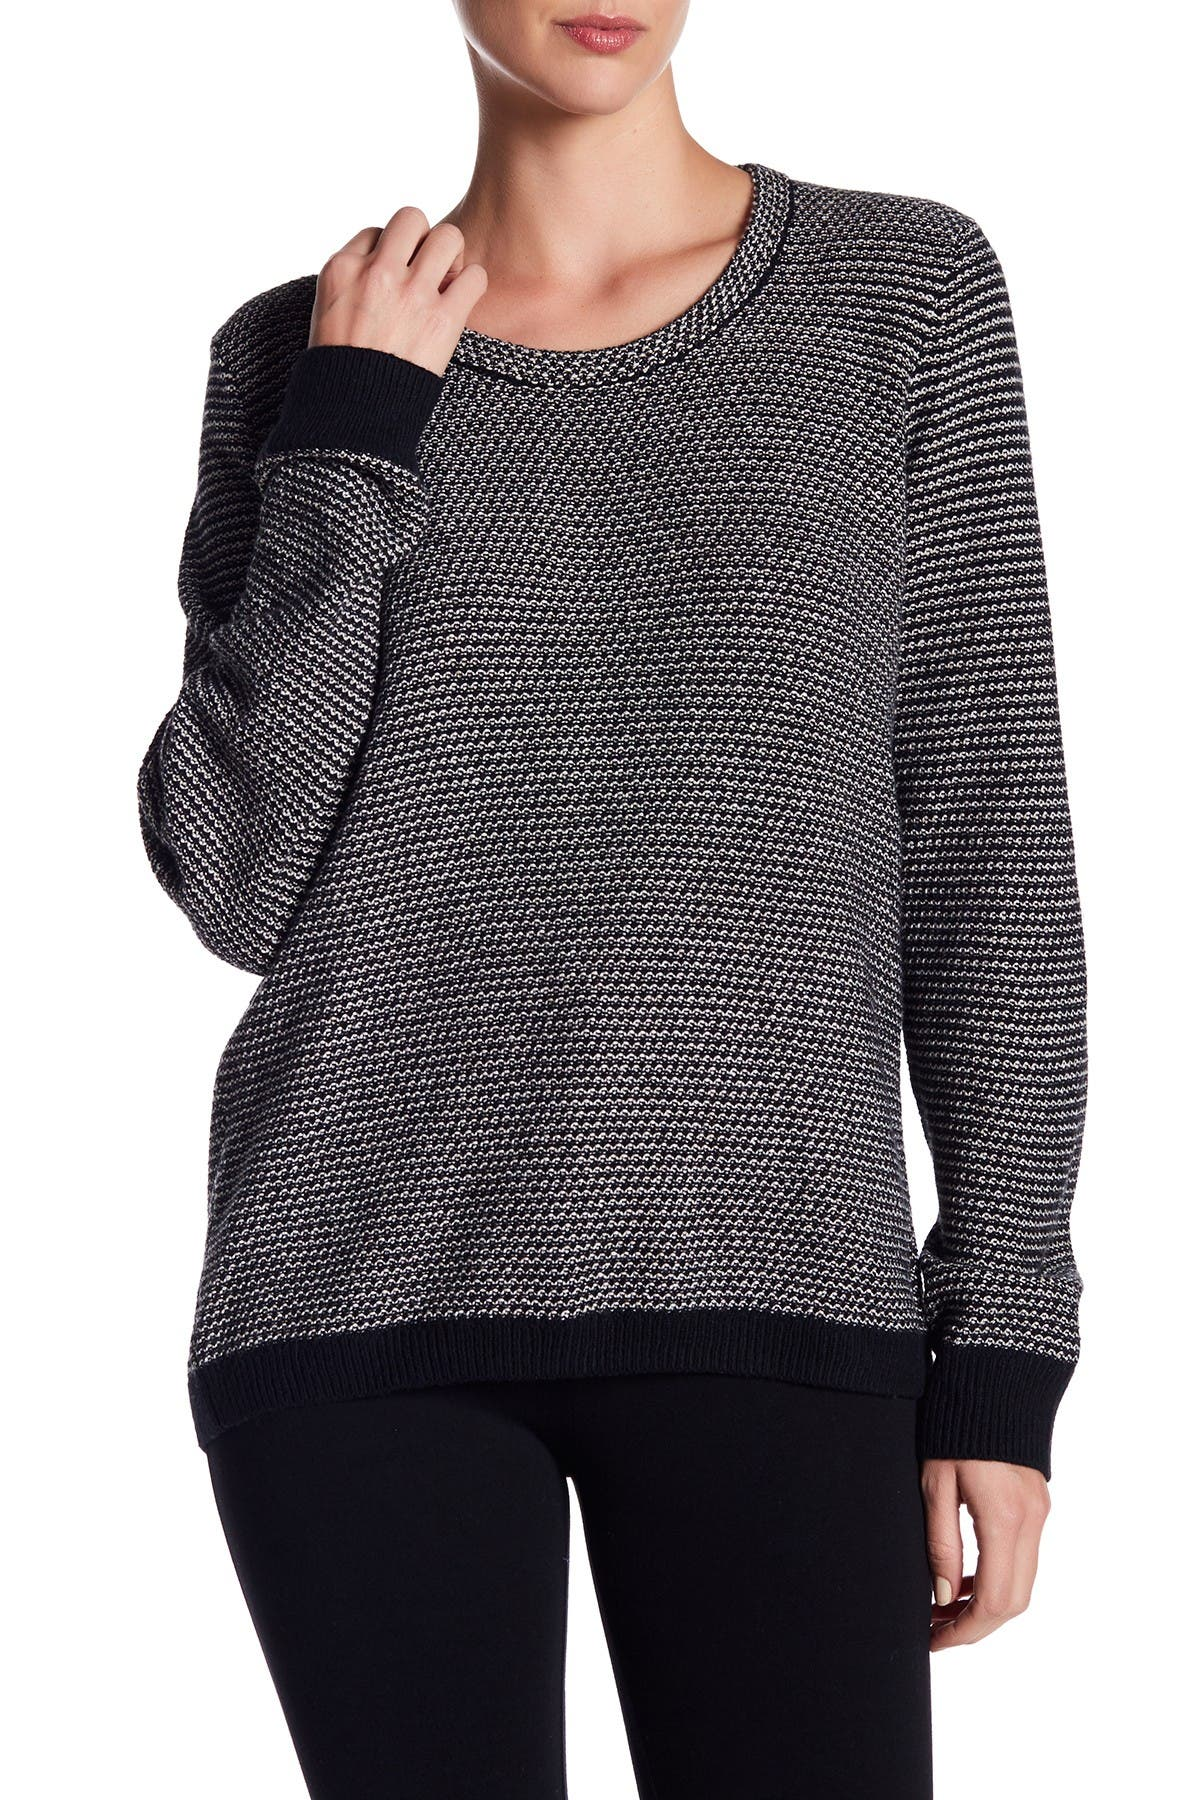 Image of Madewell Crew Neck Knit Sweater